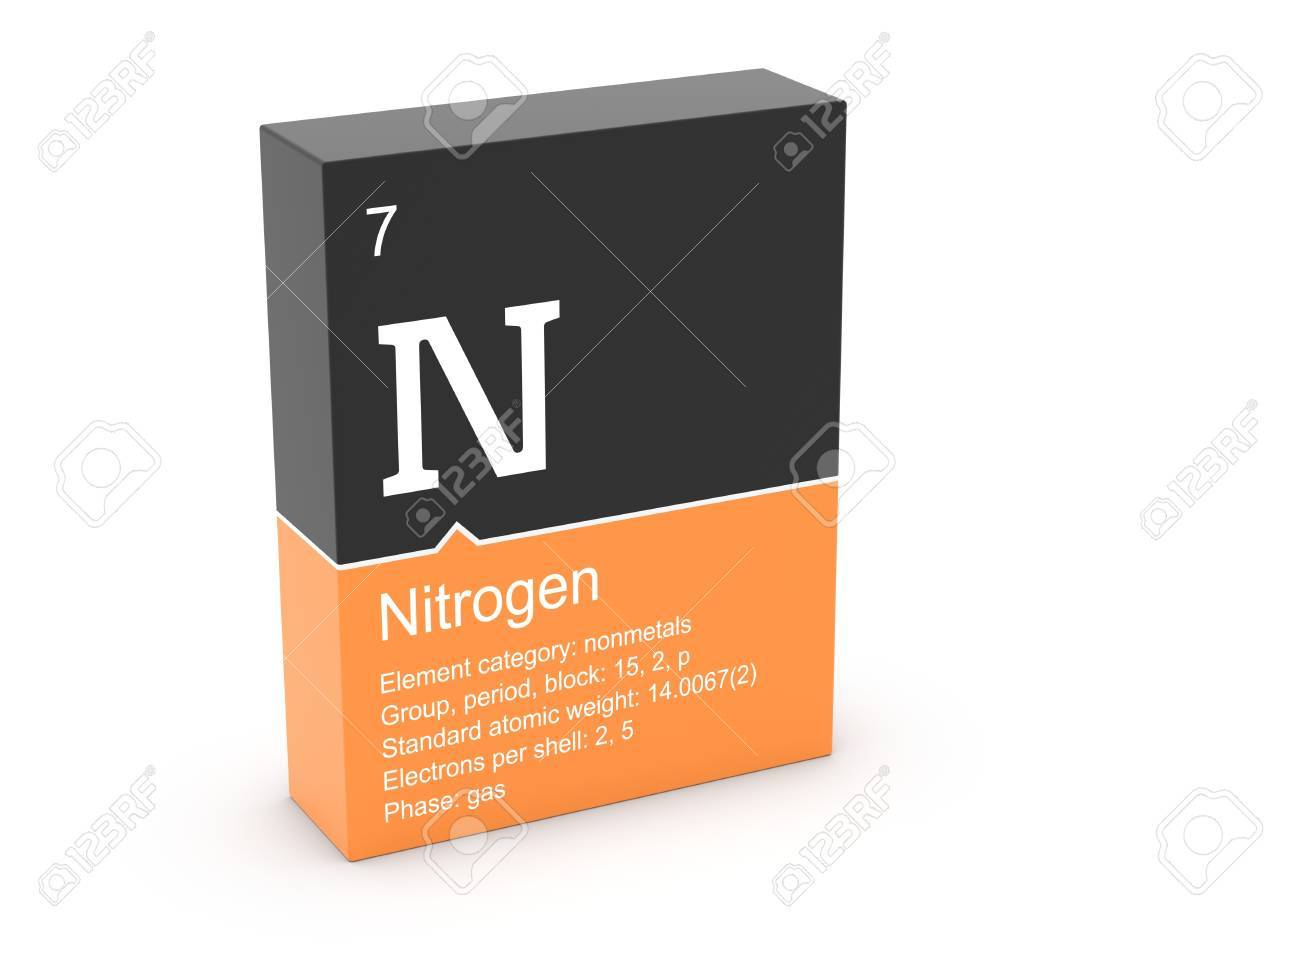 Nitrogen symbol periodic table gallery periodic table images periodic table scavenger hunt worksheet answers choice image nitrogen symbol periodic table image collections periodic table gamestrikefo Choice Image